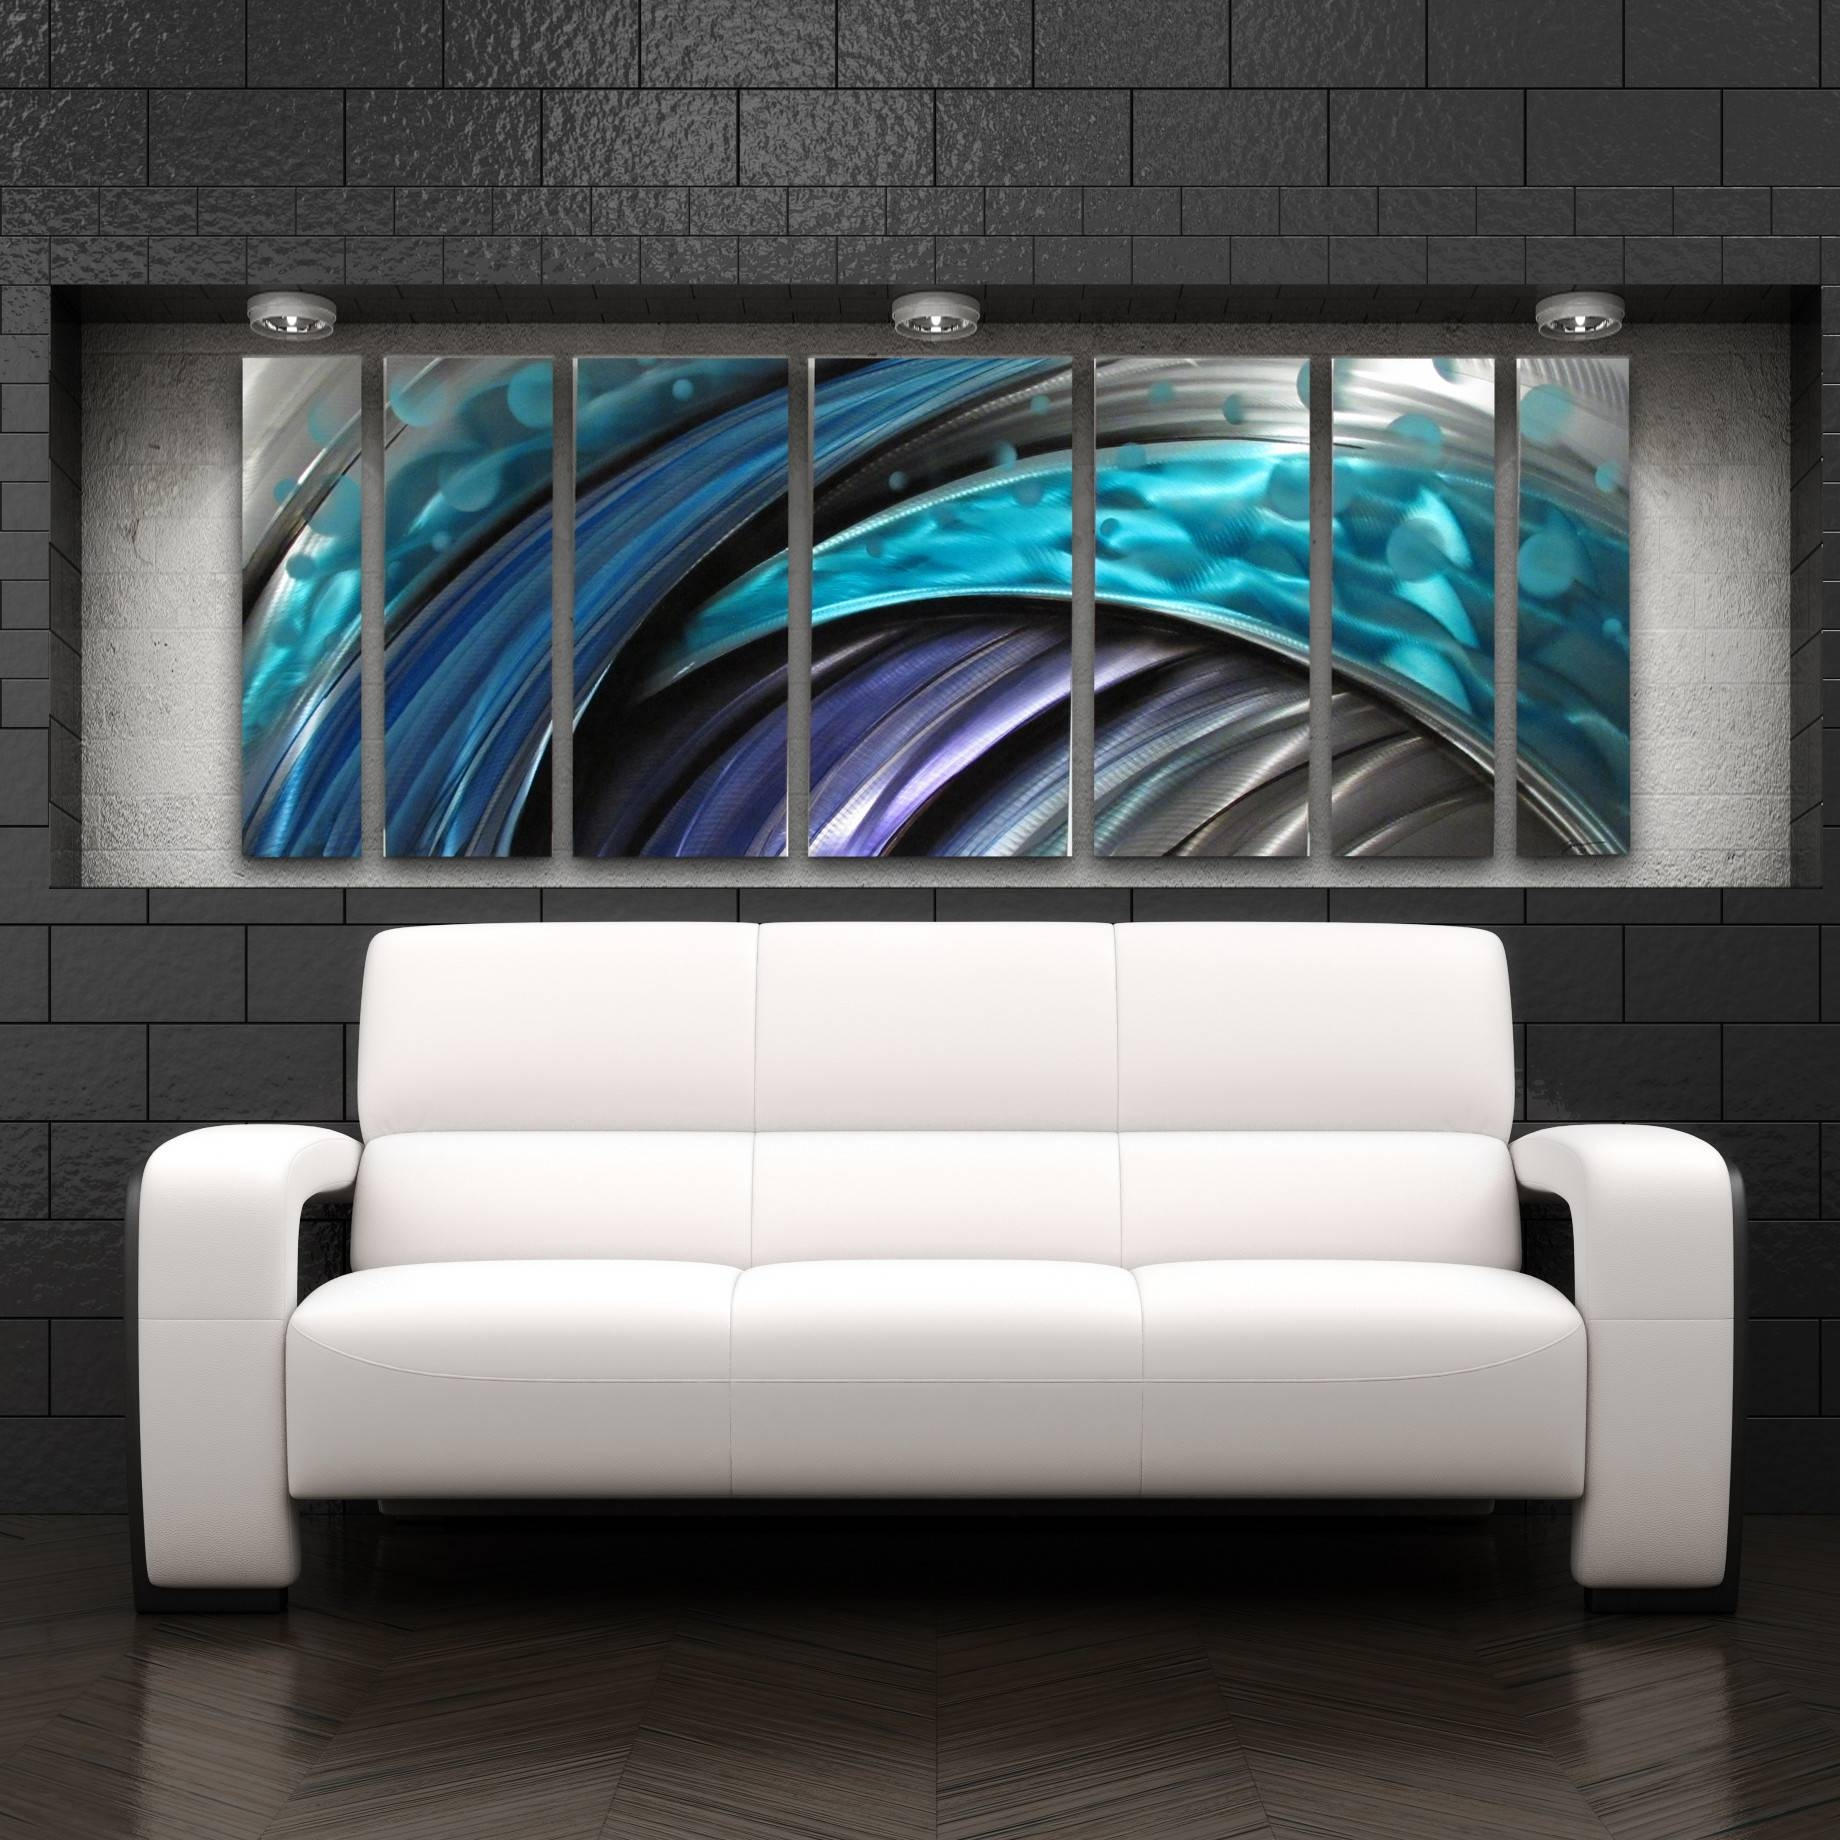 Facts That Nobody Told You About Contemporary Metal Wall Art Intended For Current Oversized Metal Wall Art (View 1 of 20)